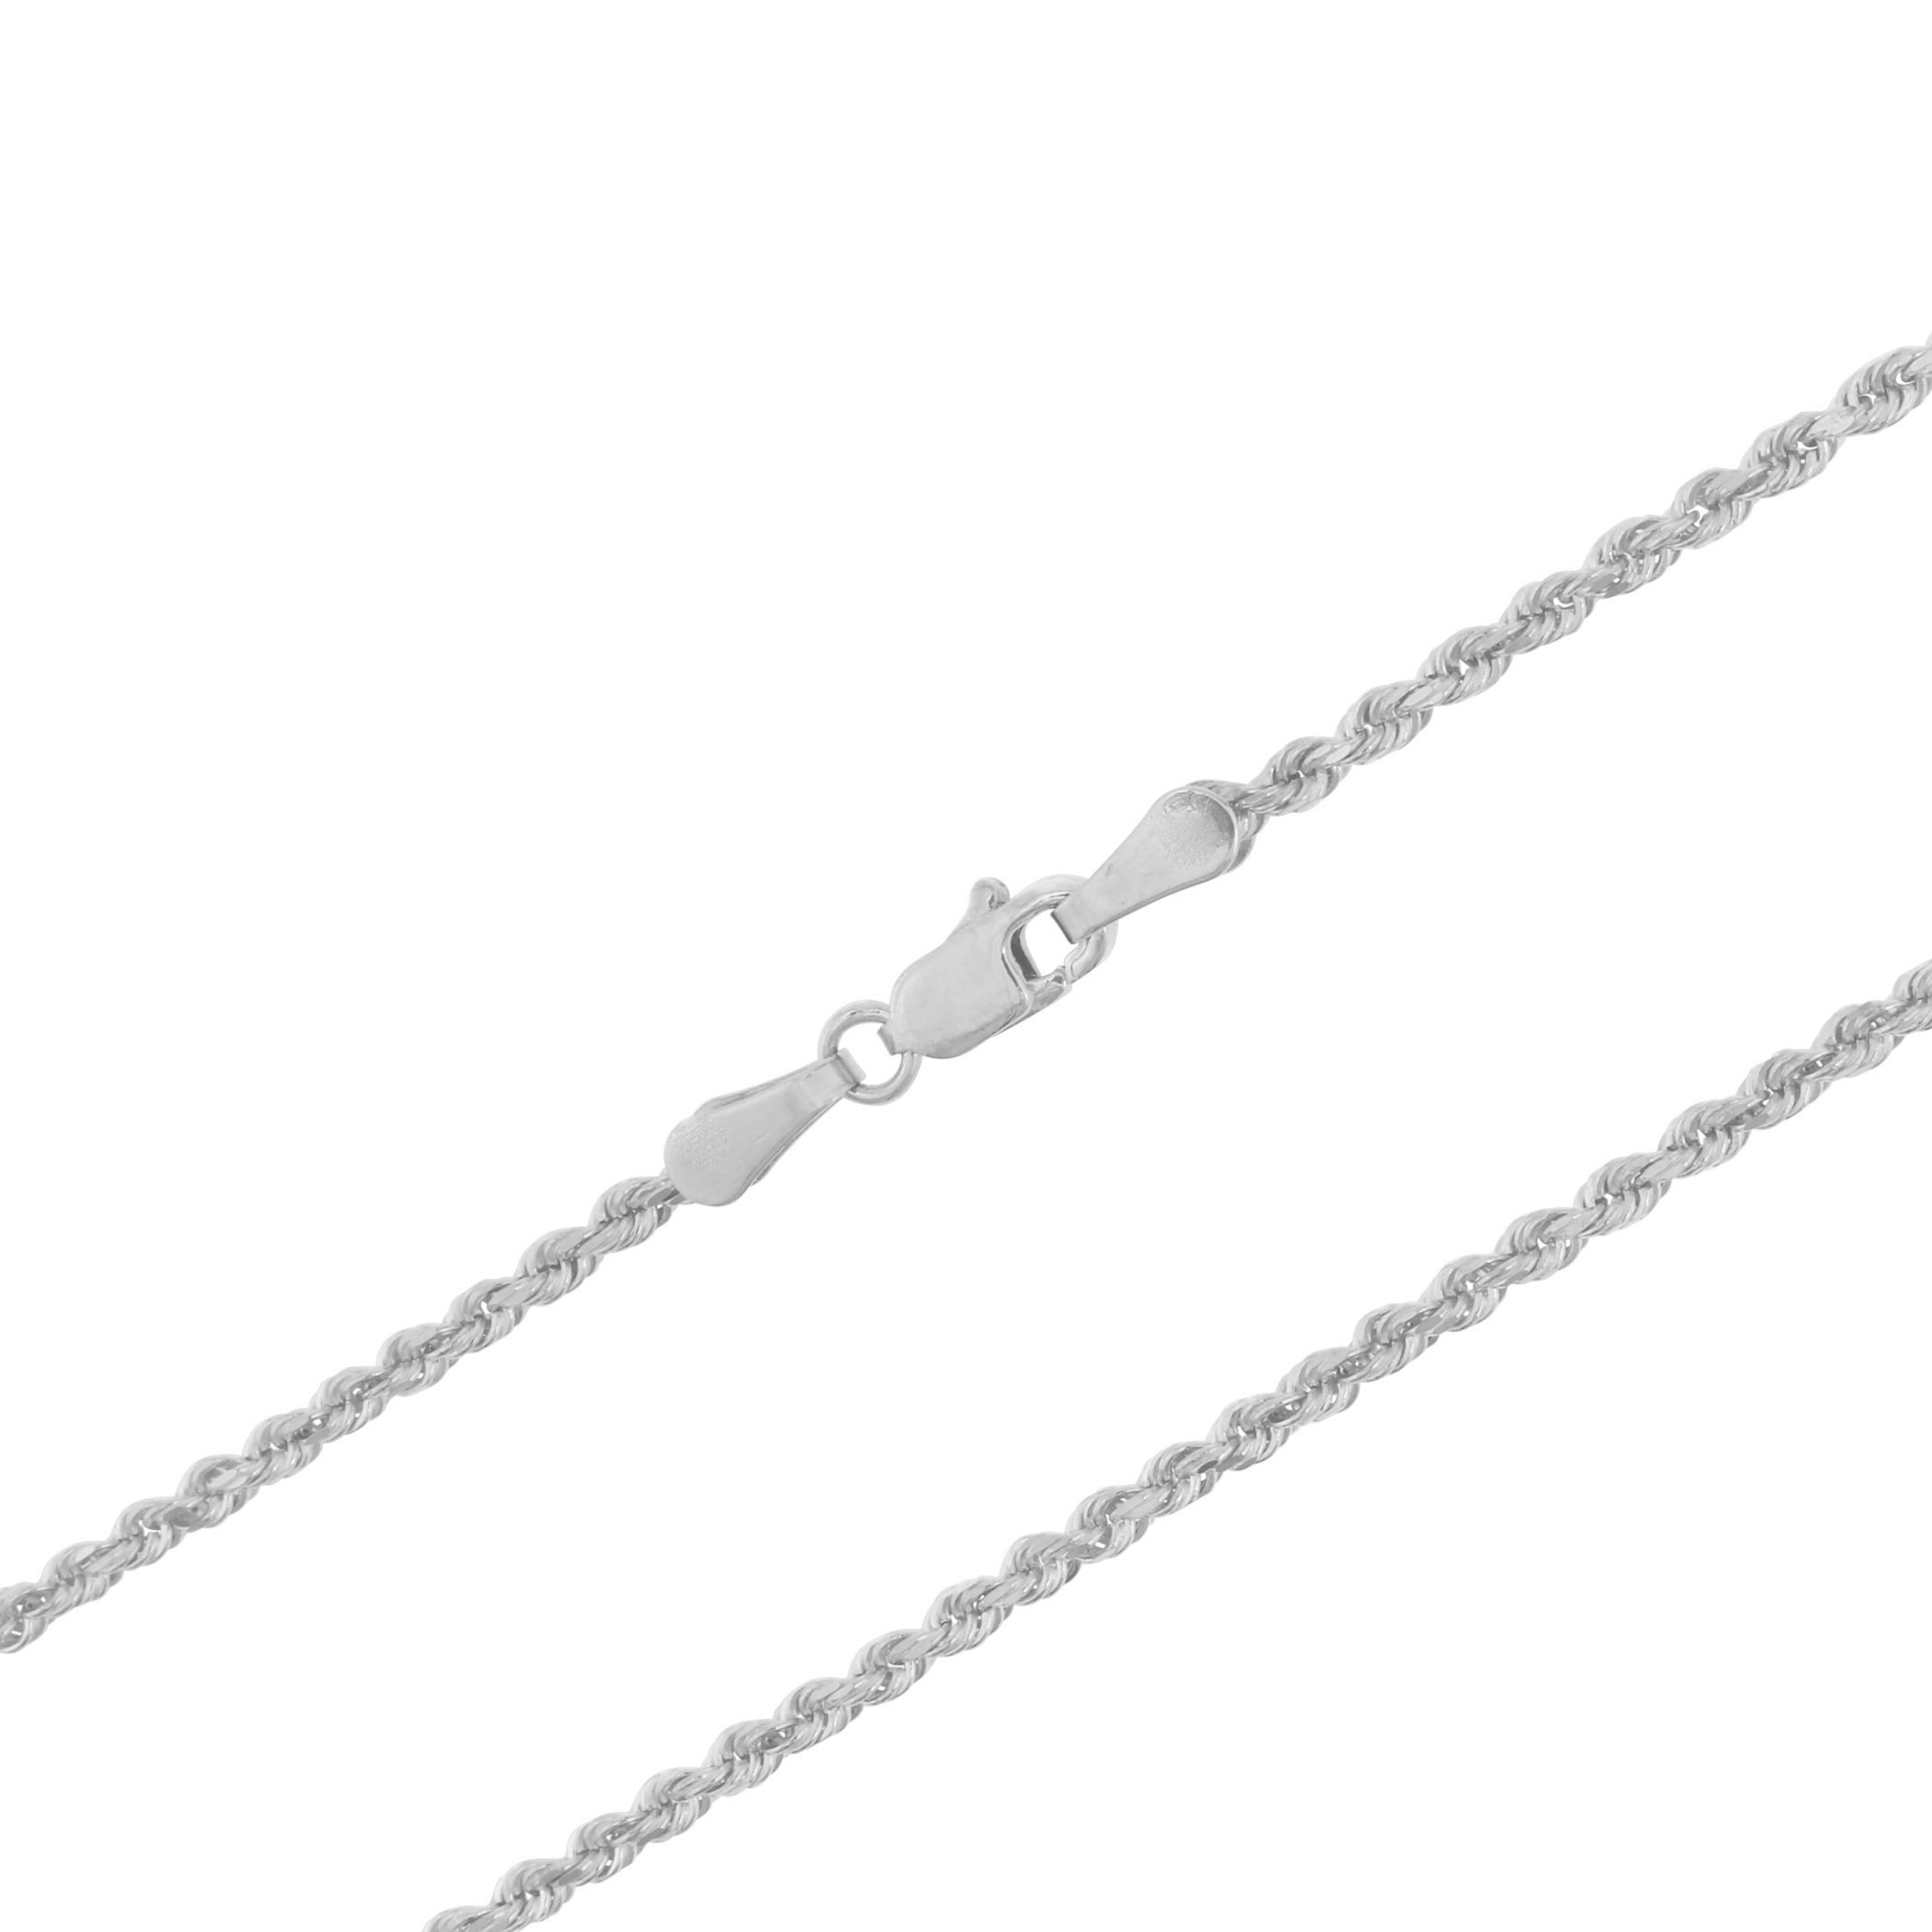 14K-White-Gold-Italian-2-5mm-Diamond-Cut-Rope-Chain-Pendant-Necklace-14-034-30-034 thumbnail 21